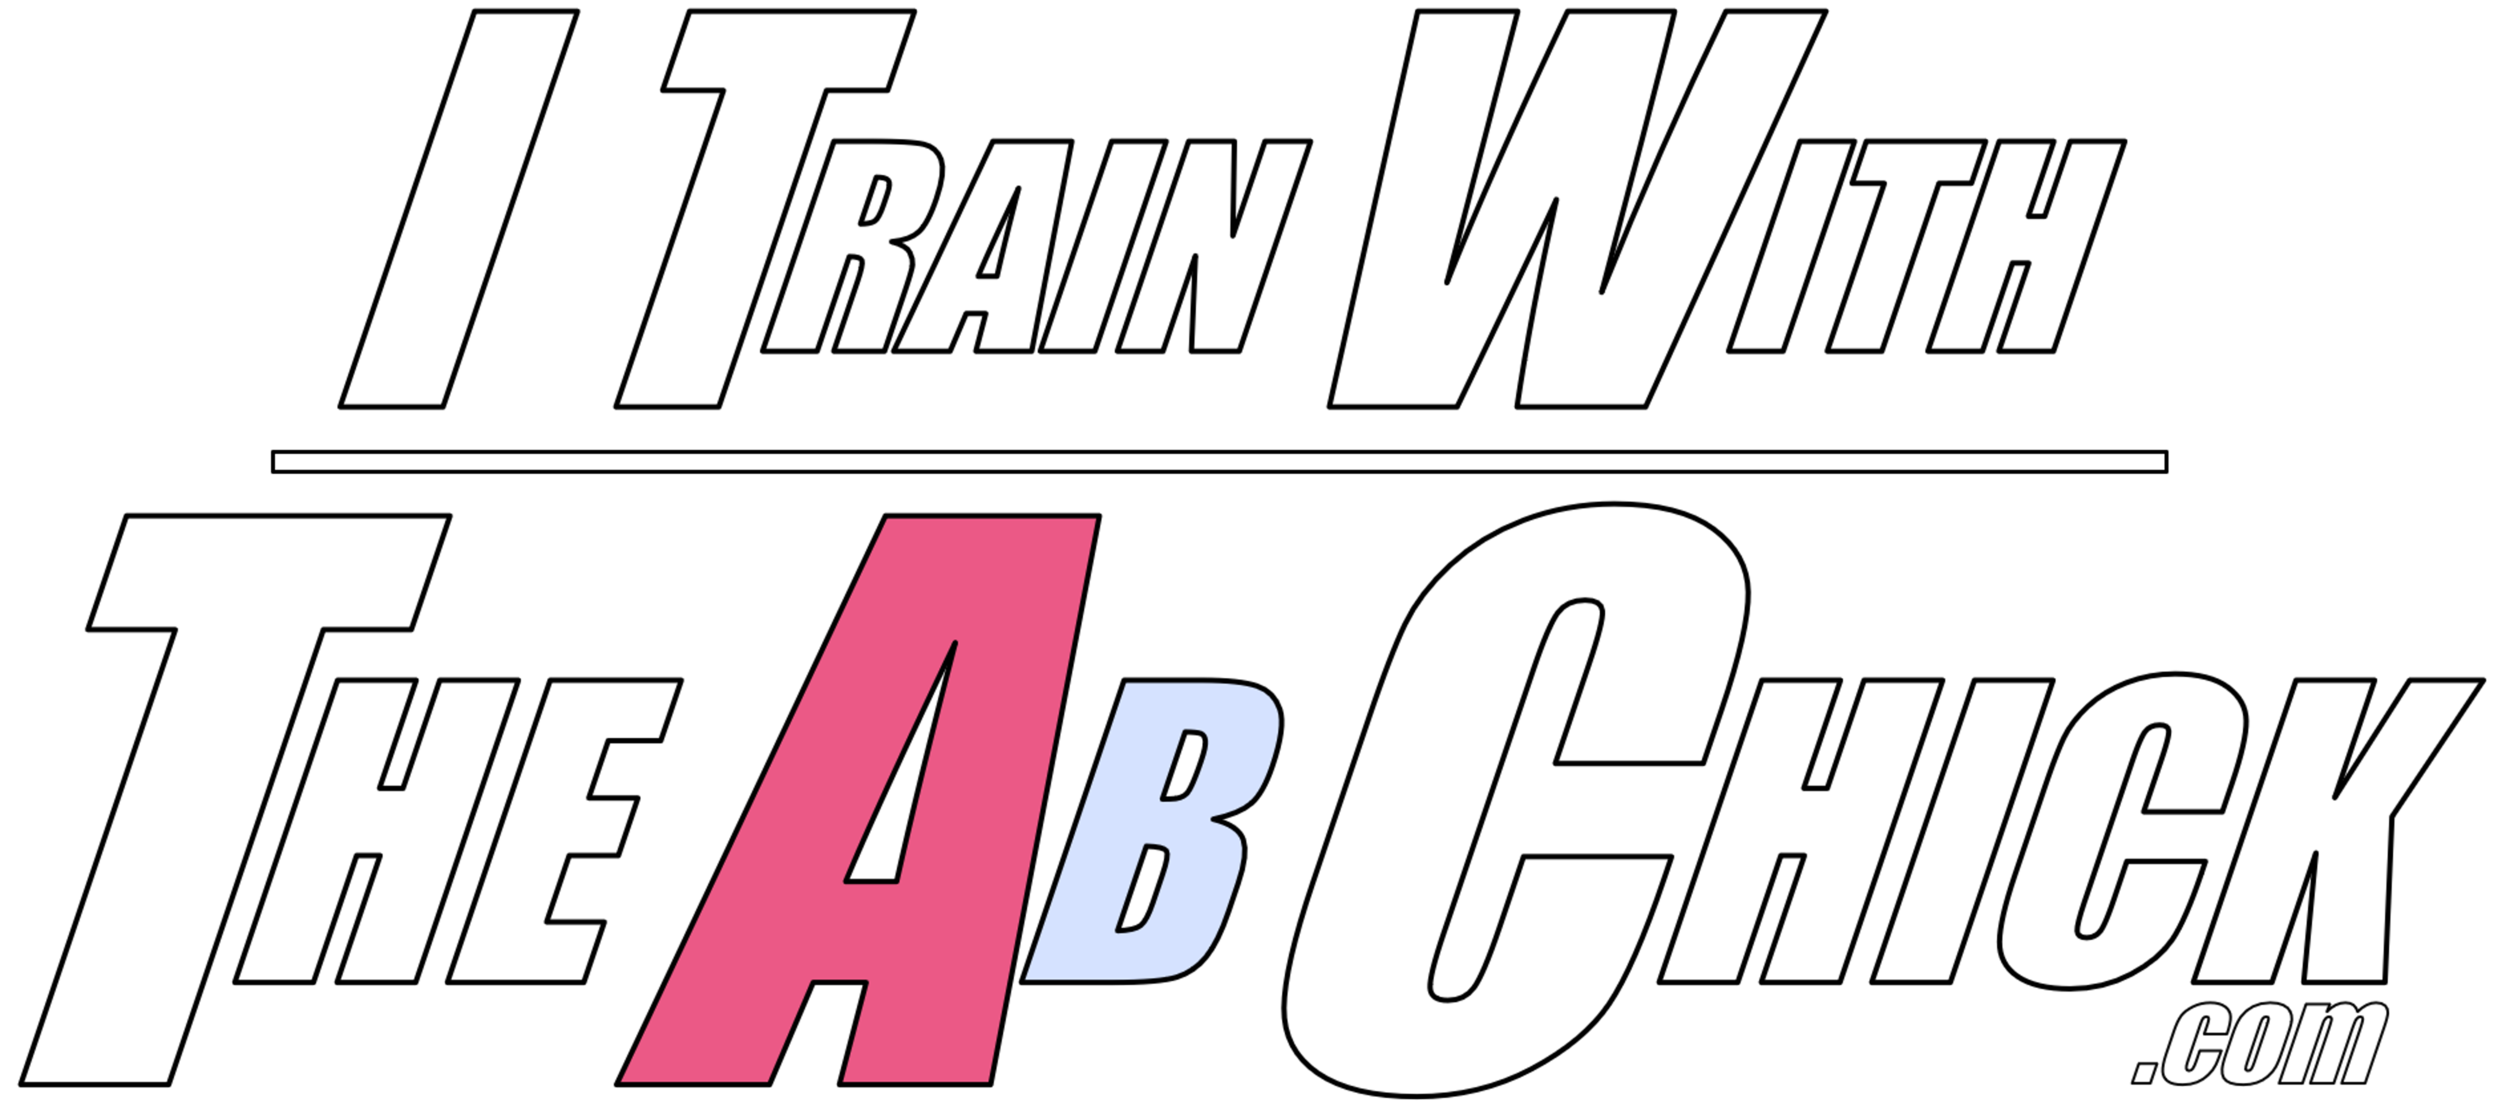 Athlete-team-Ab-Chick-blue-Logo---White-Letters-light-blue-B-black-outline__printfile_front.png